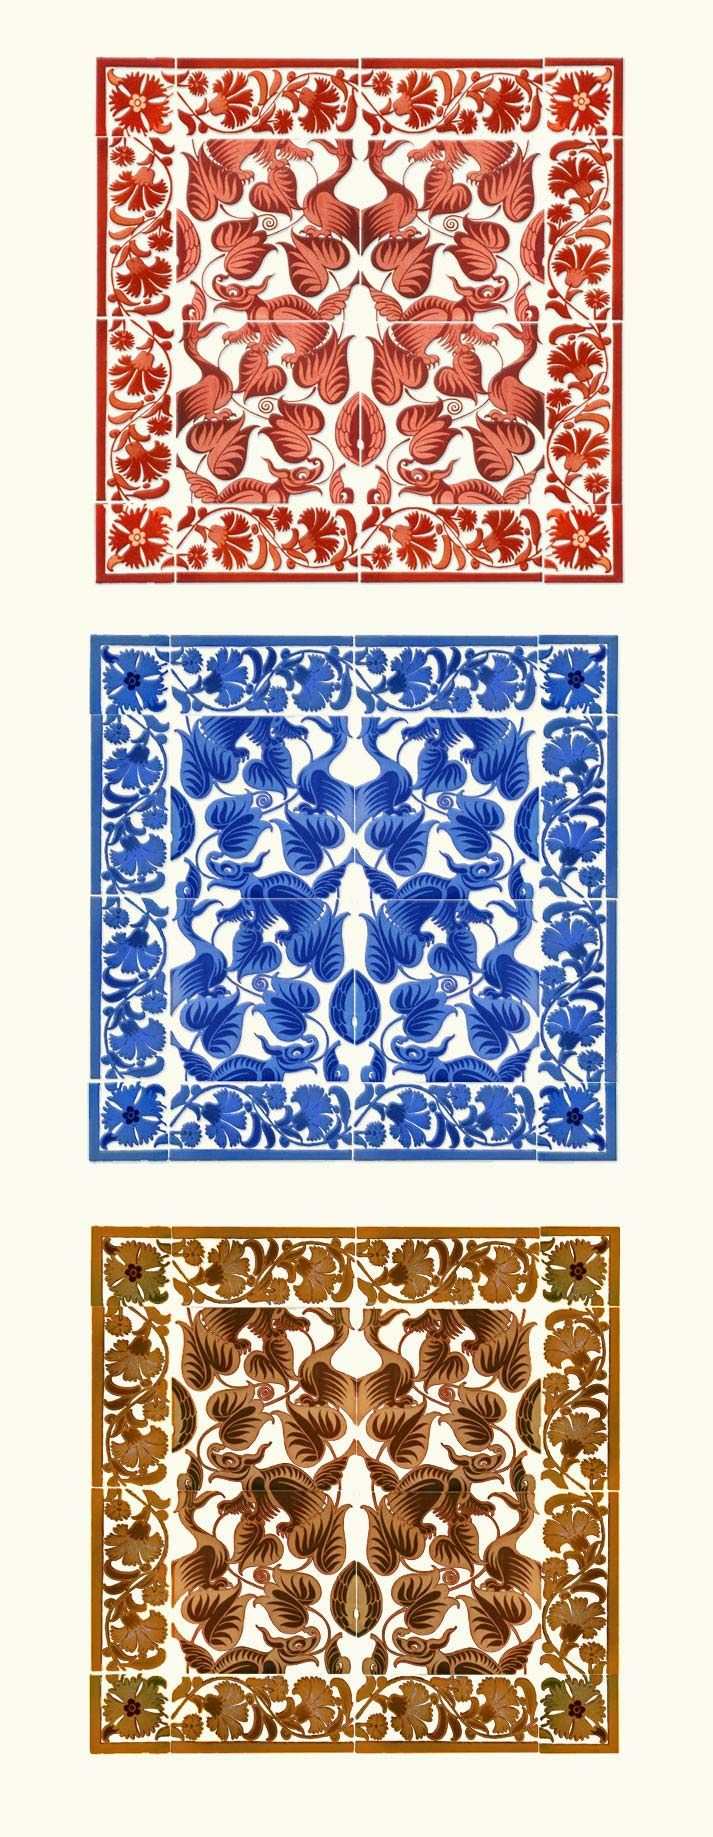 William De Morgan Happy Dragons - tile panels with floral and folio borders, red lustre, cobalt blue, gold and copper.